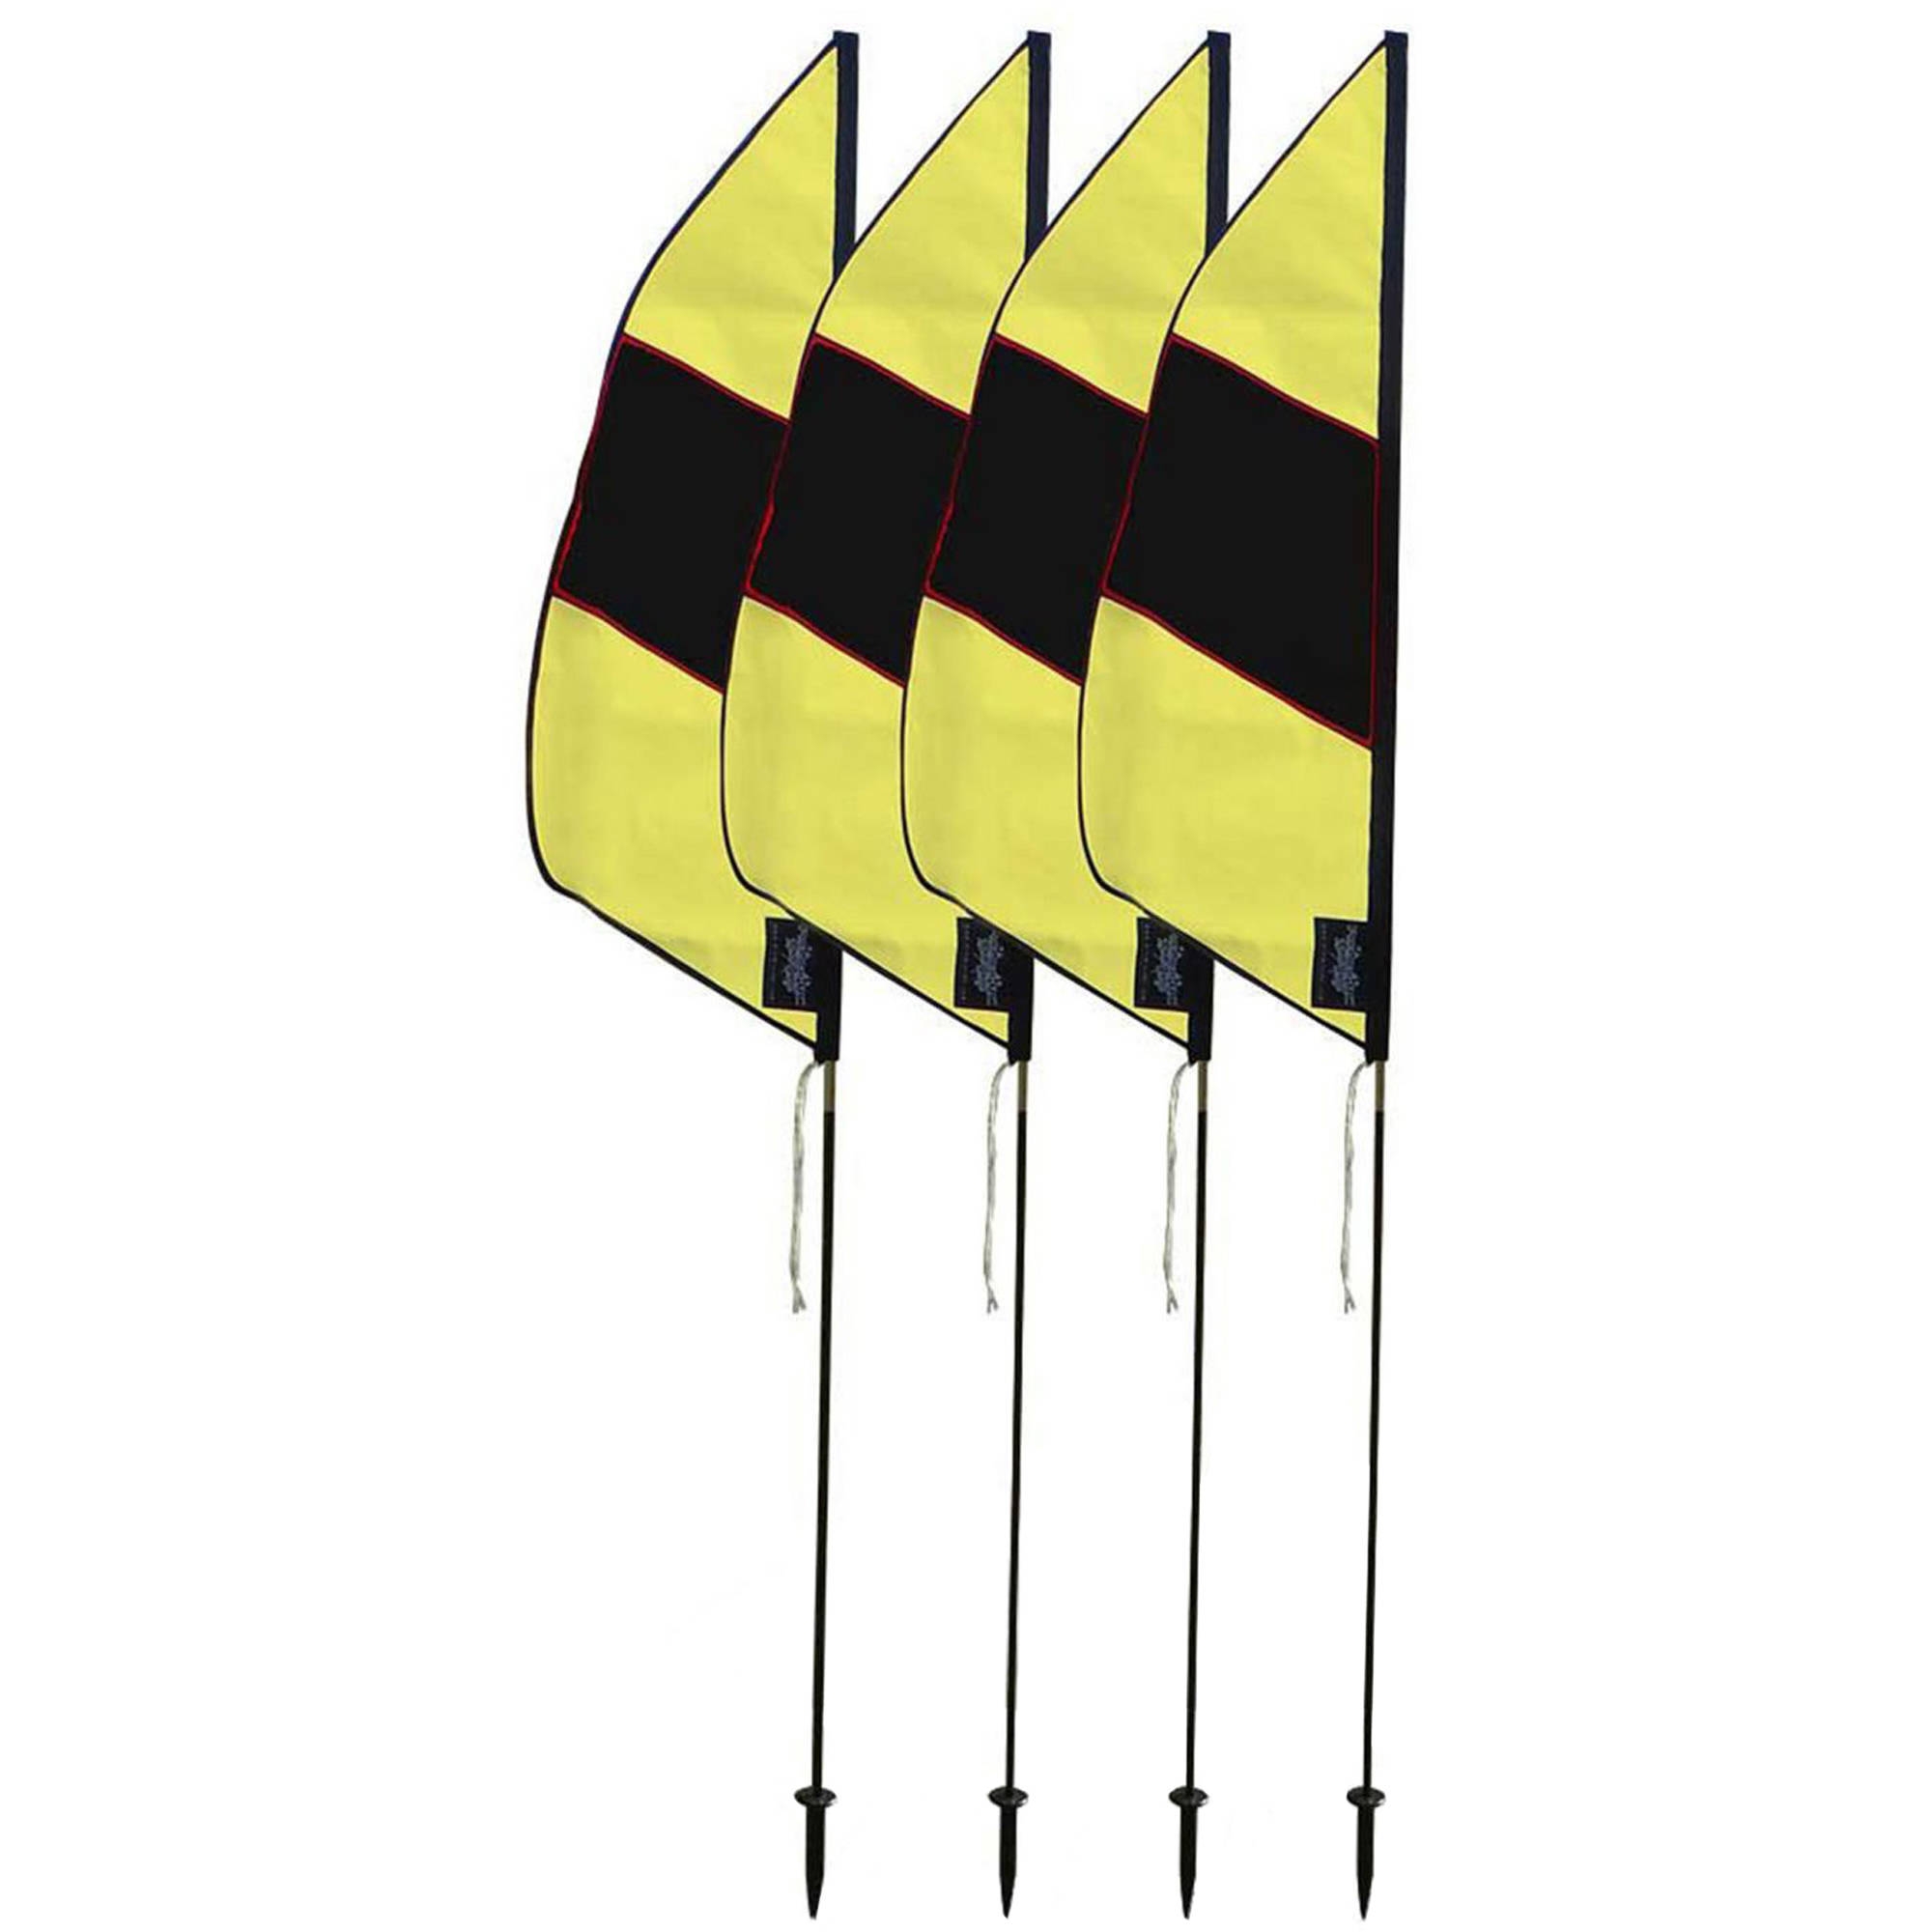 Premier Kites & Designs 3 5' Boundary FPV Racing Drone Flags with 6' Poles  (Yellow/Black, Set of 4)